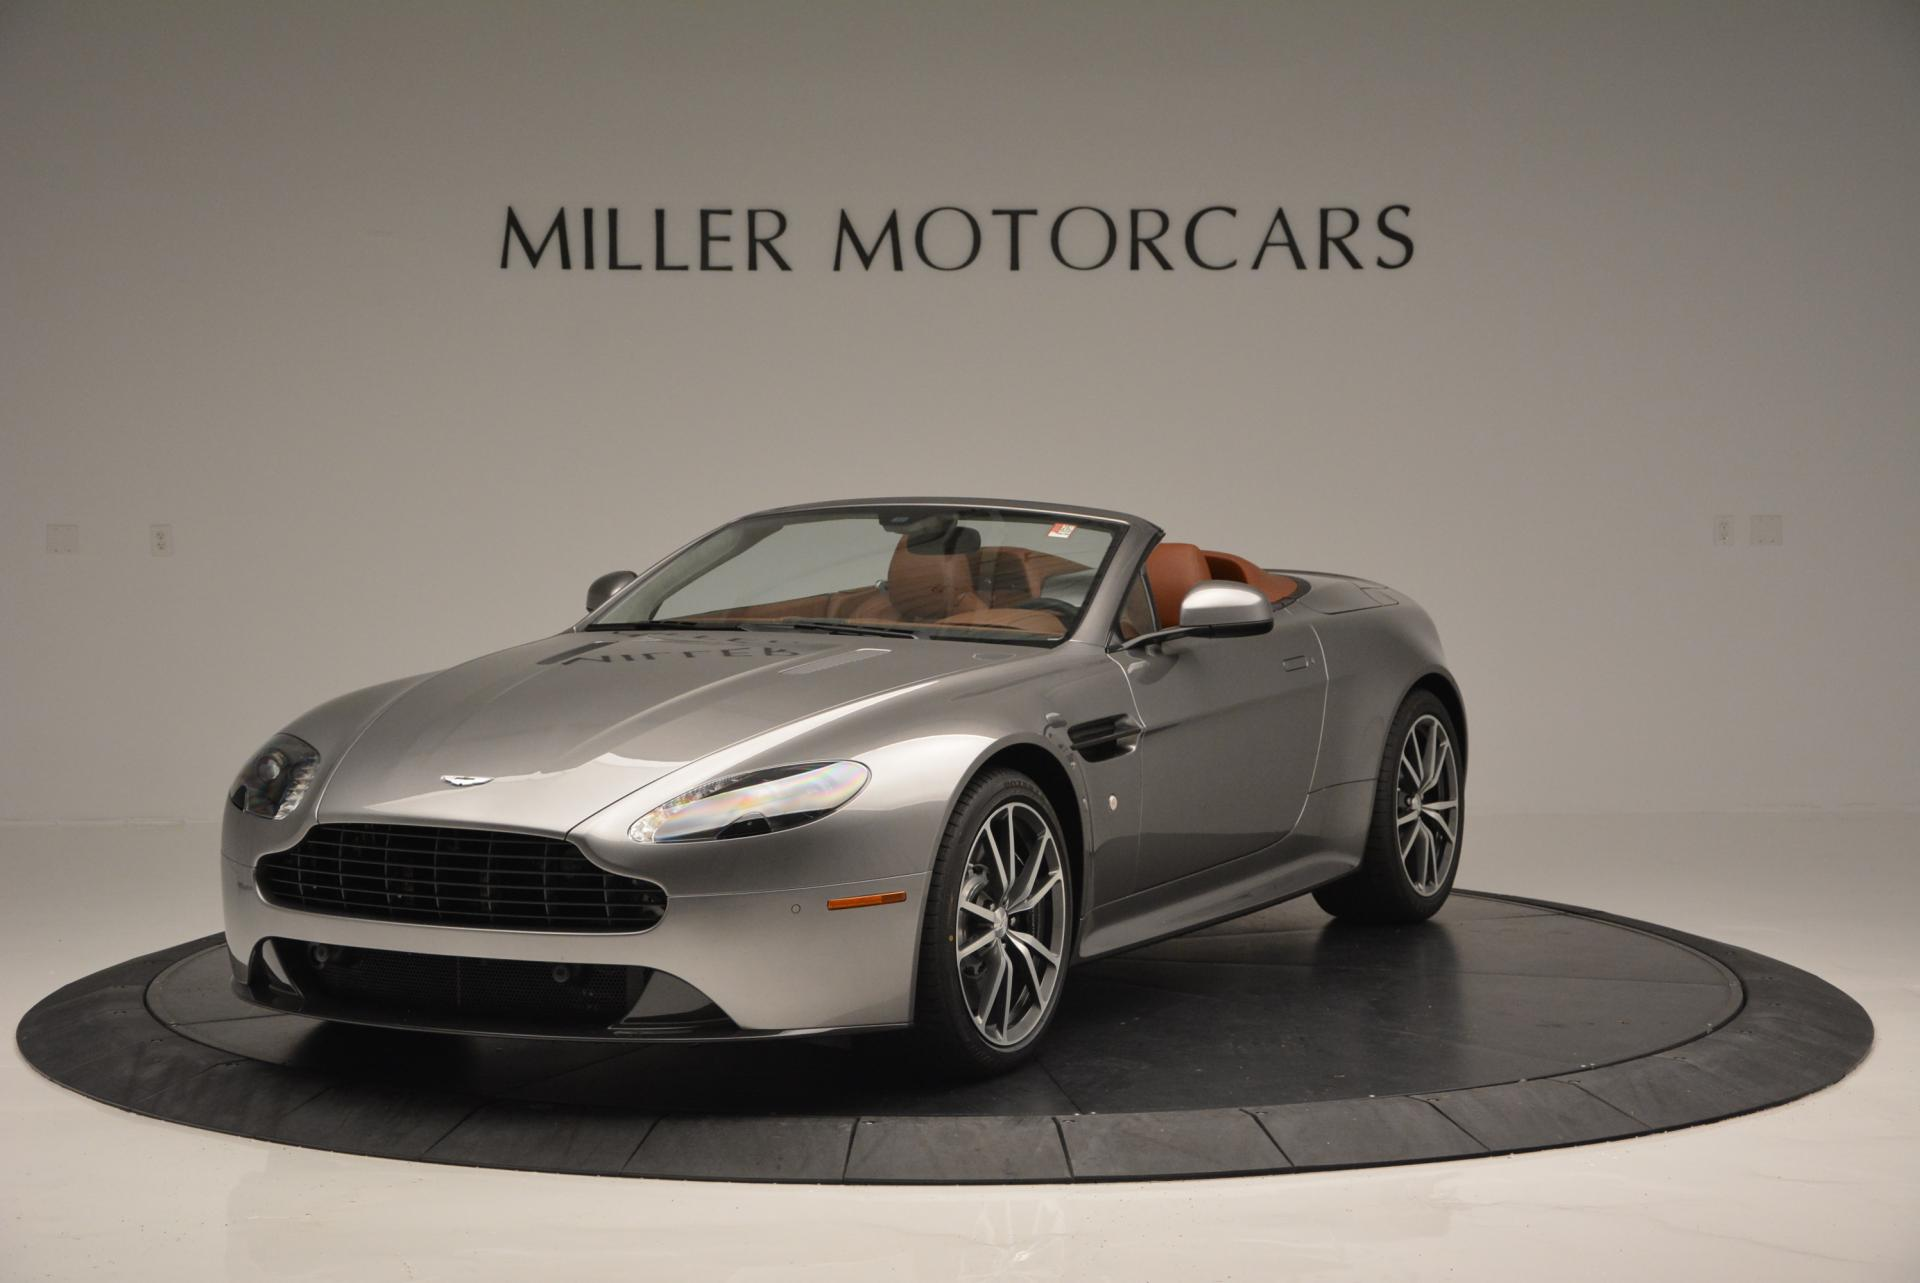 New 2016 Aston Martin V8 Vantage S for sale Sold at Rolls-Royce Motor Cars Greenwich in Greenwich CT 06830 1